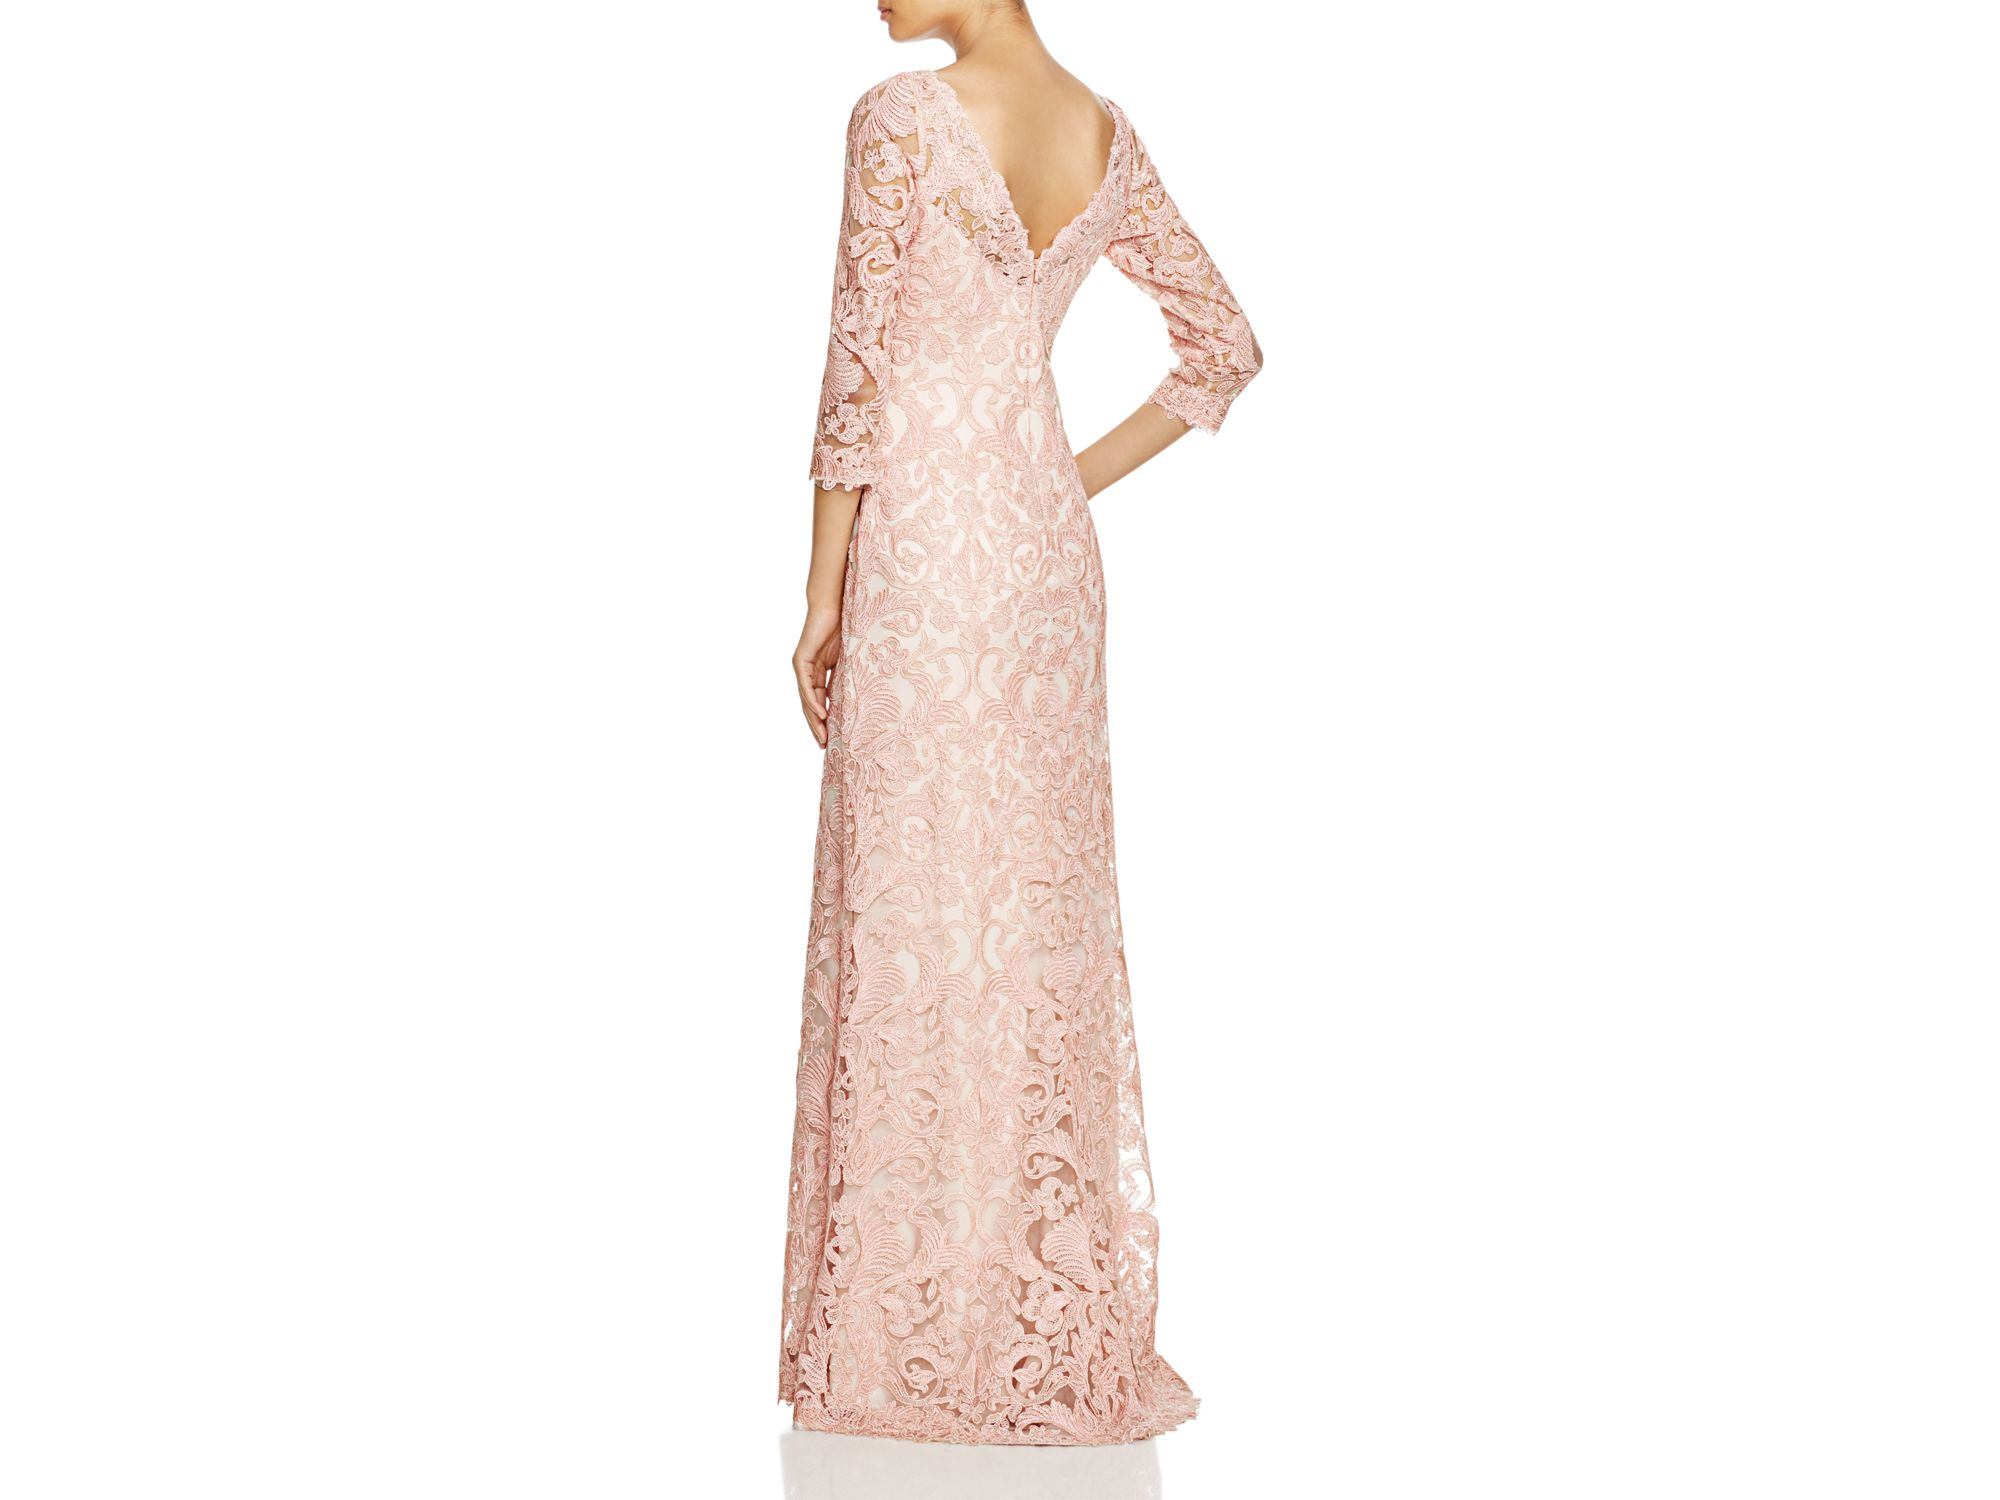 Tadashi 3 4 Sleeve Sequin Lace Gown_Other dresses_dressesss